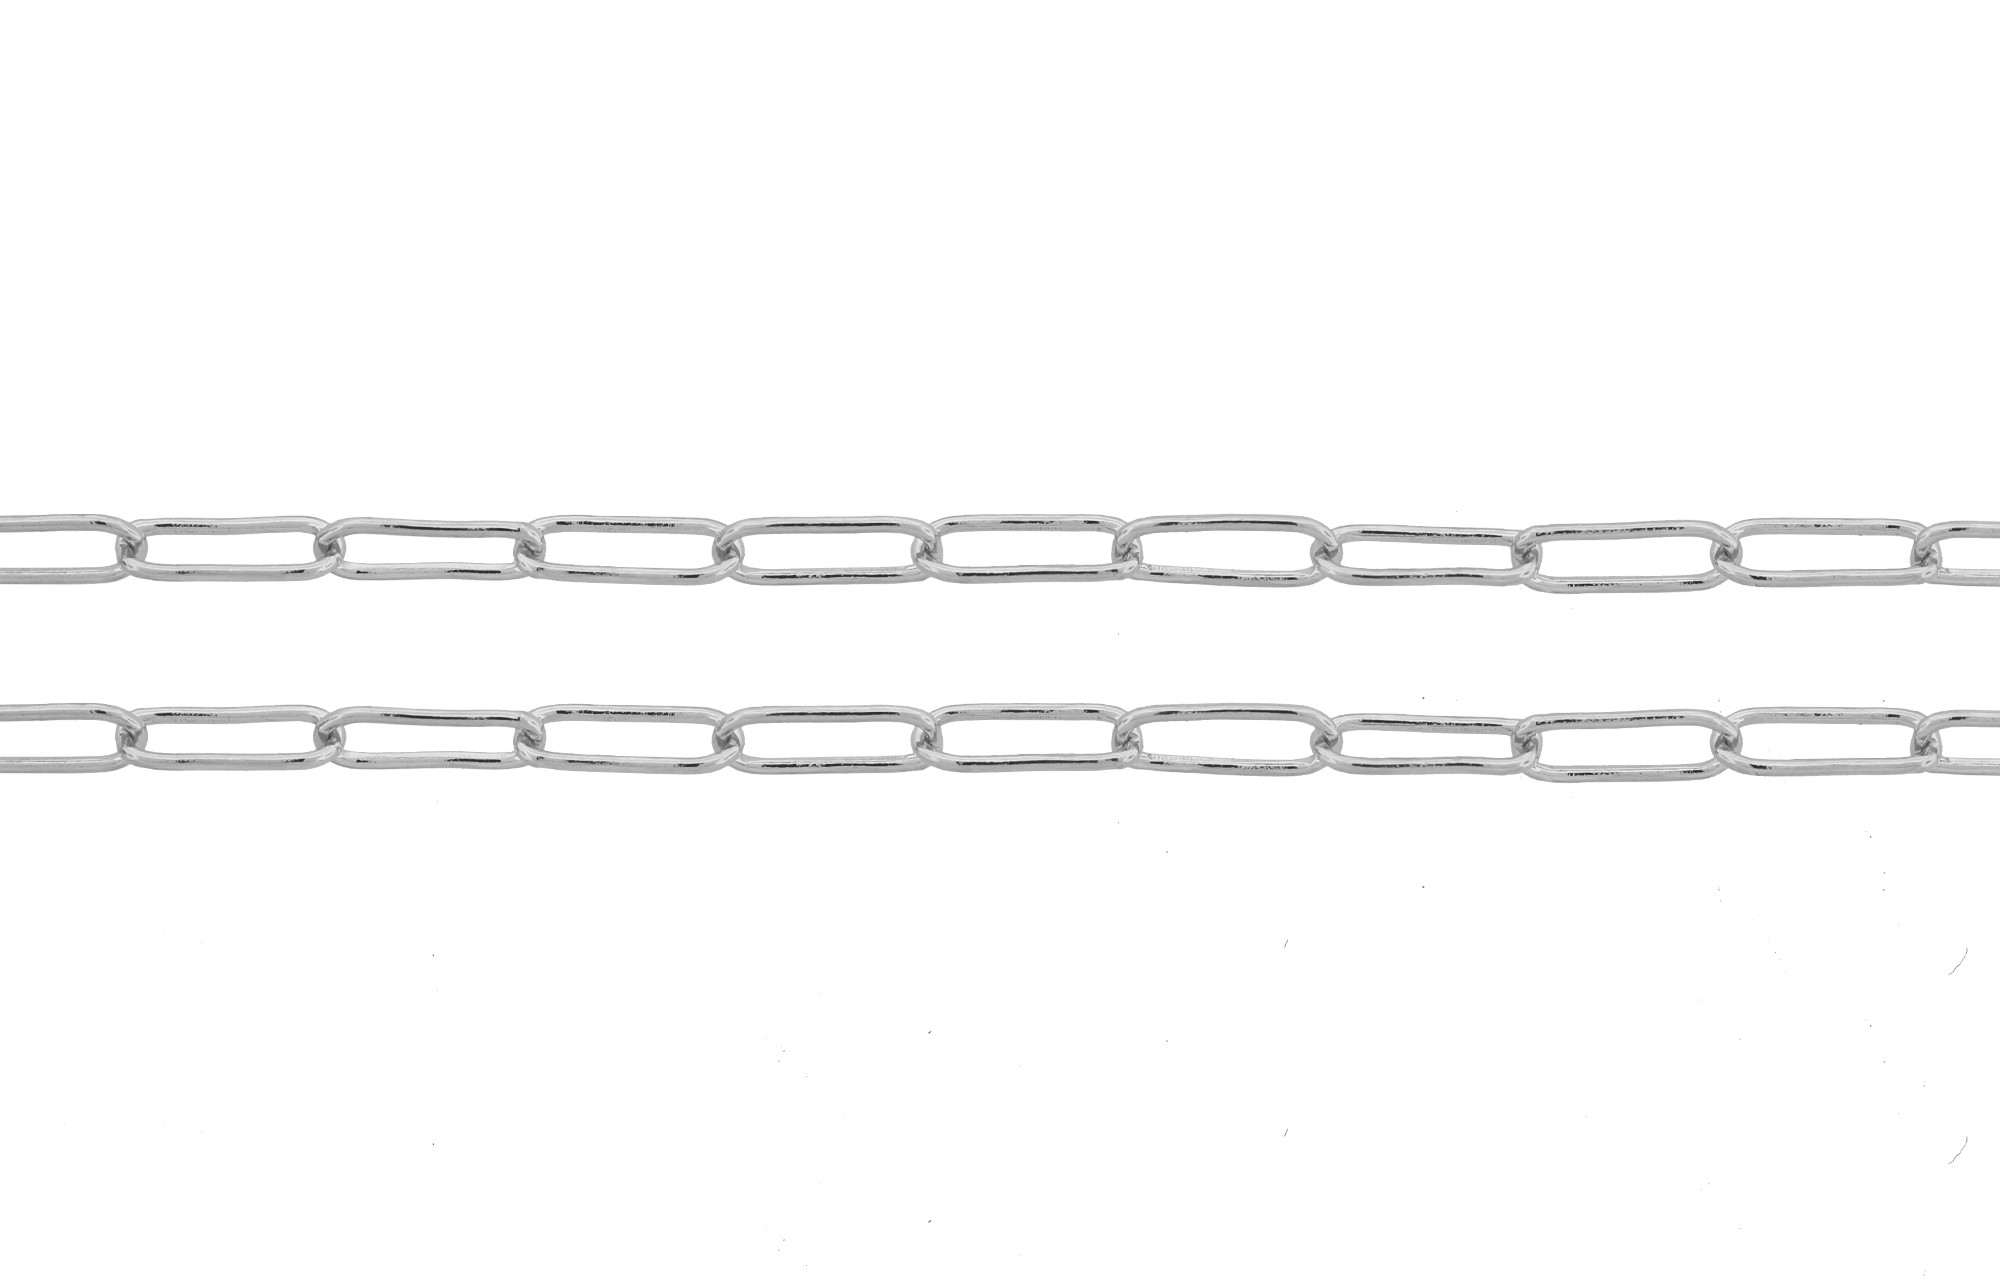 Drawn chain cable #6